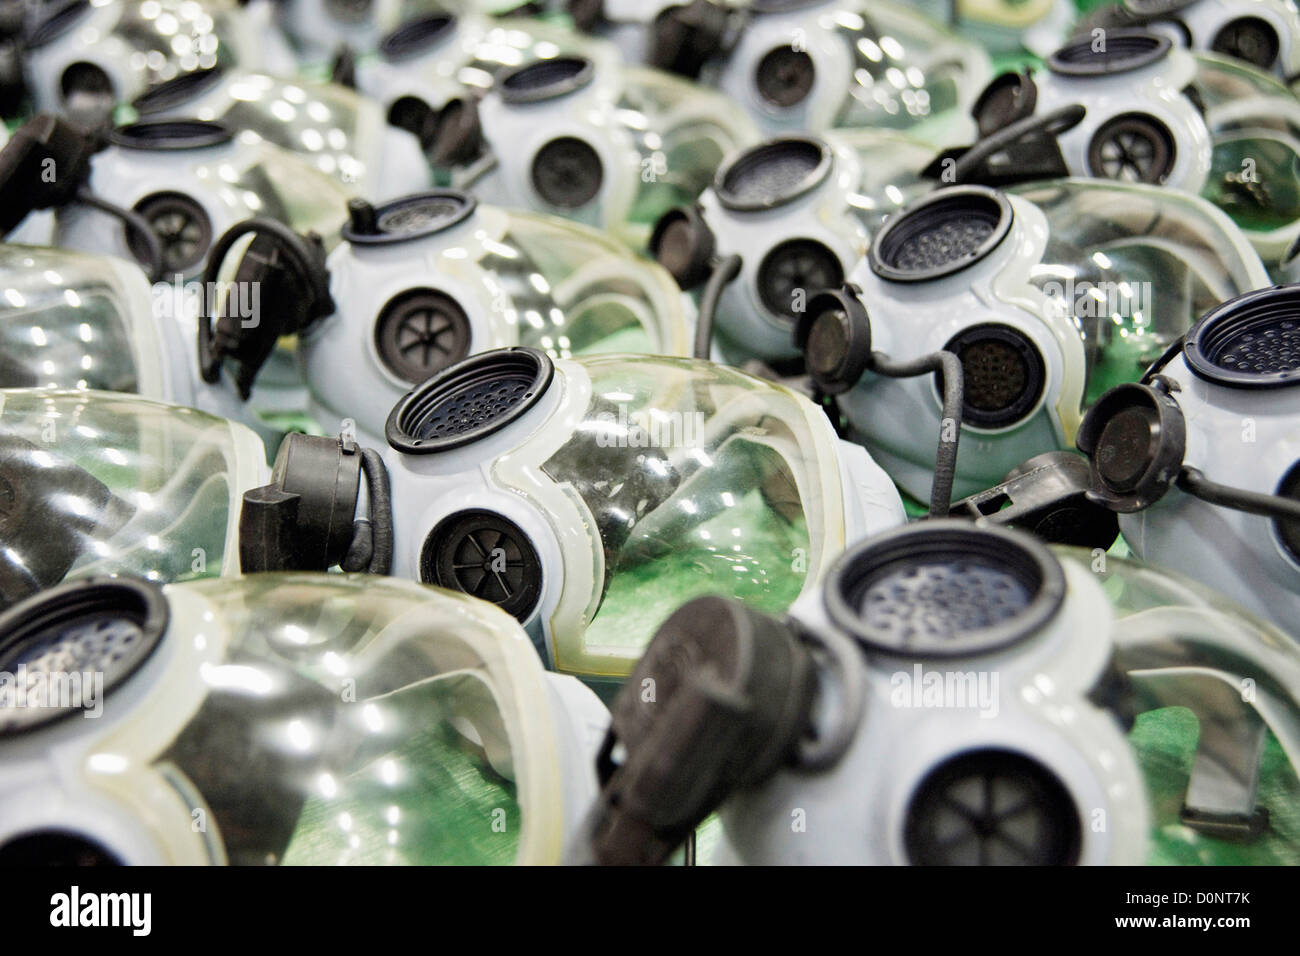 Dozens gas masks lie in basin after being washed turned in 35th Logistics Readiness Squadron supply warehouse Misawa - Stock Image